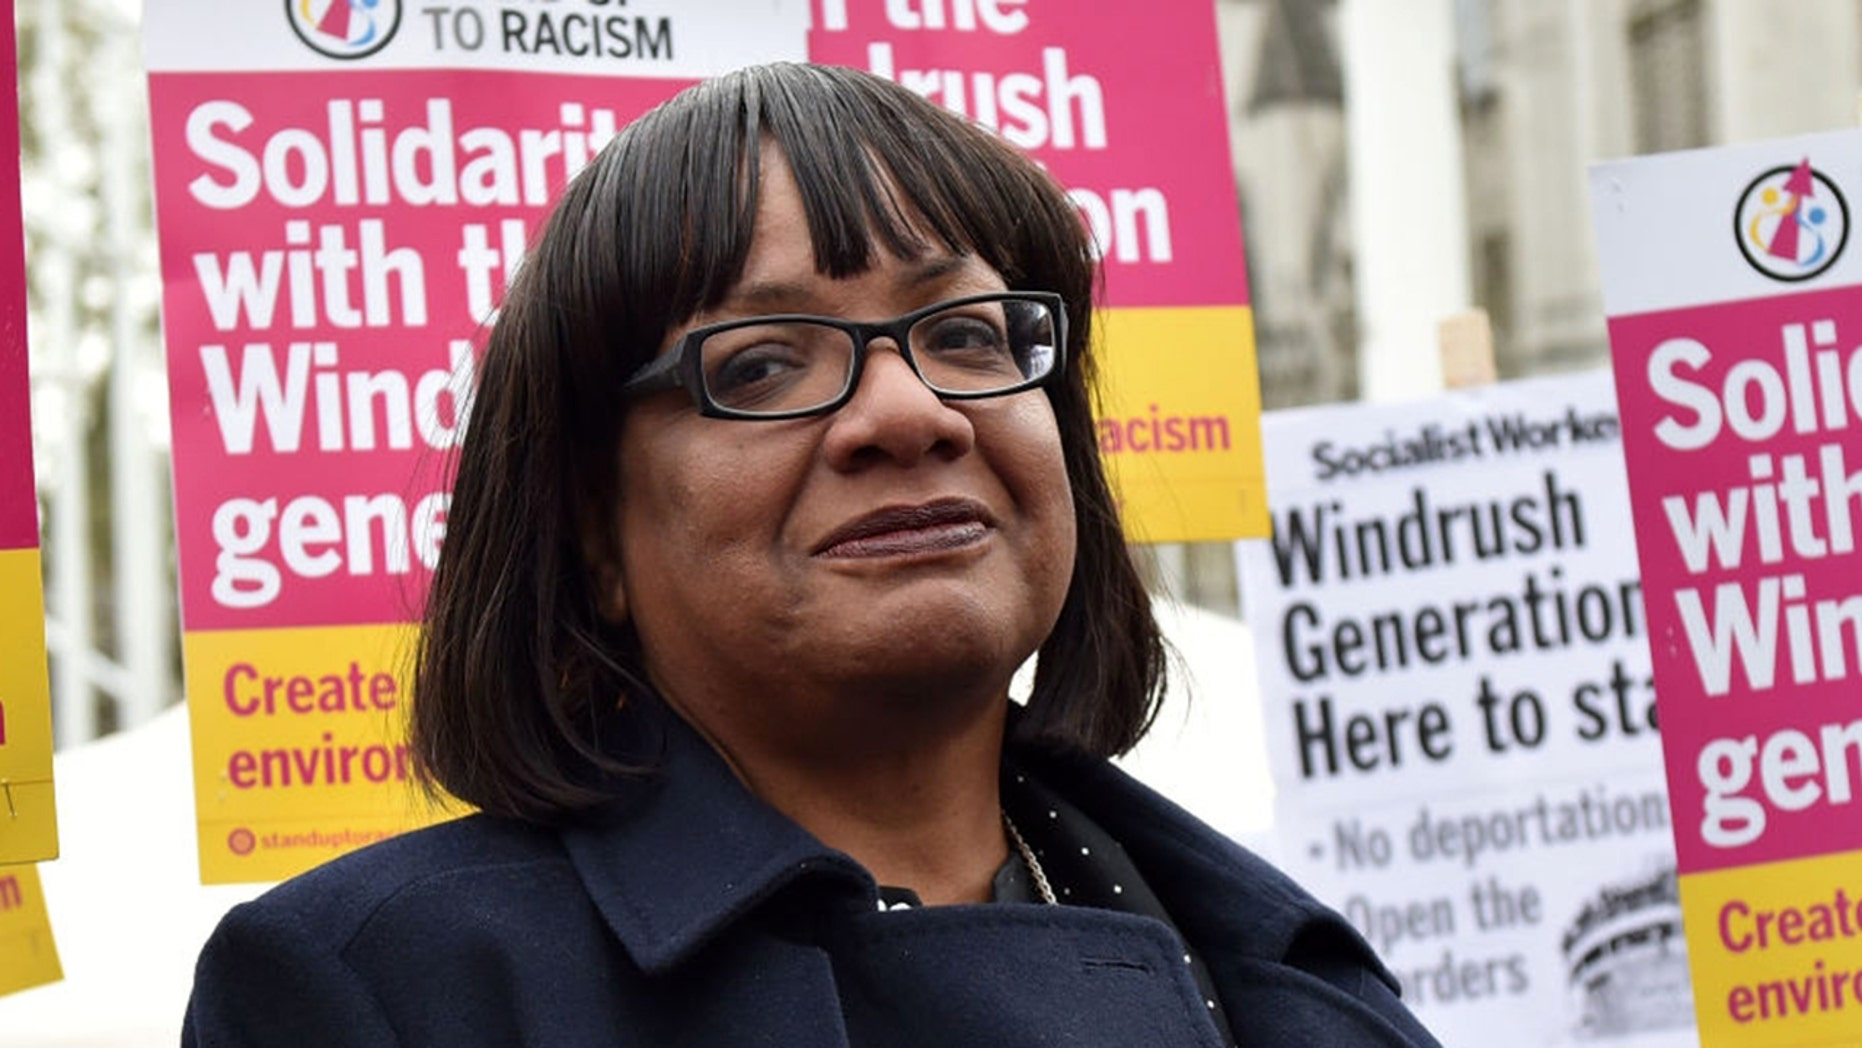 Shadow Home Secretary Diane Abbott has apologized after a photo circulated showing her drinking on the London Overground, where it is illegal to consume alcohol.